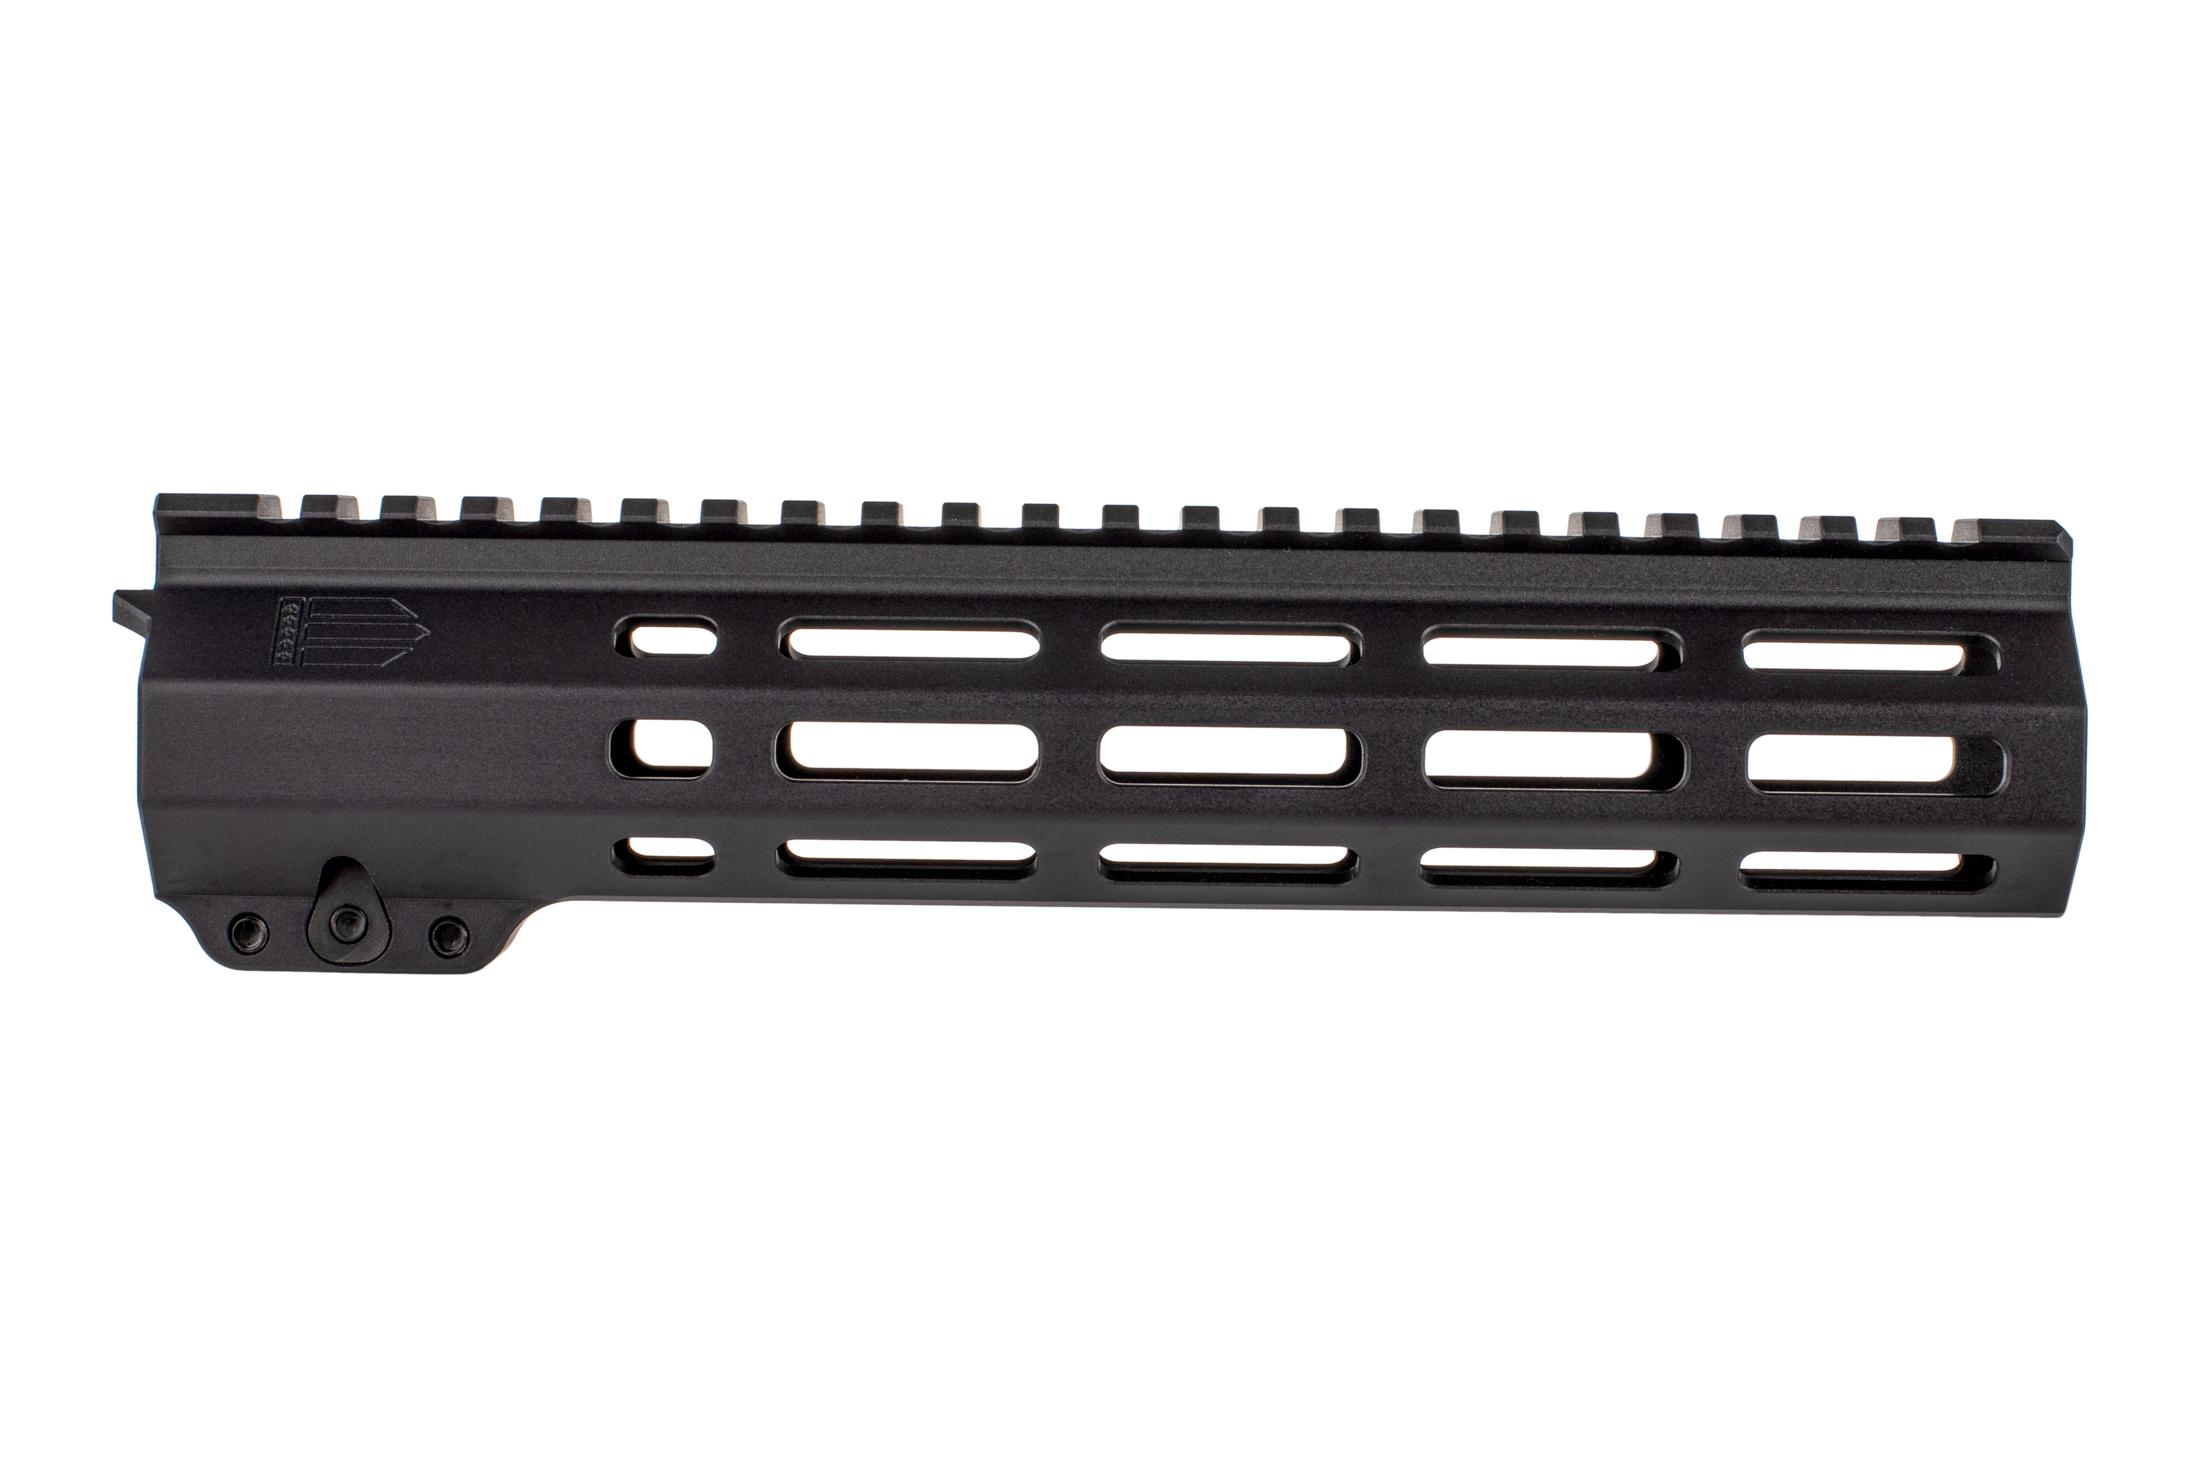 EXPO Arms 9.5in E-Series M-LOK freefloat rail for the AR-15 features M-LOK slots across 7 surfaces with full length top rail.